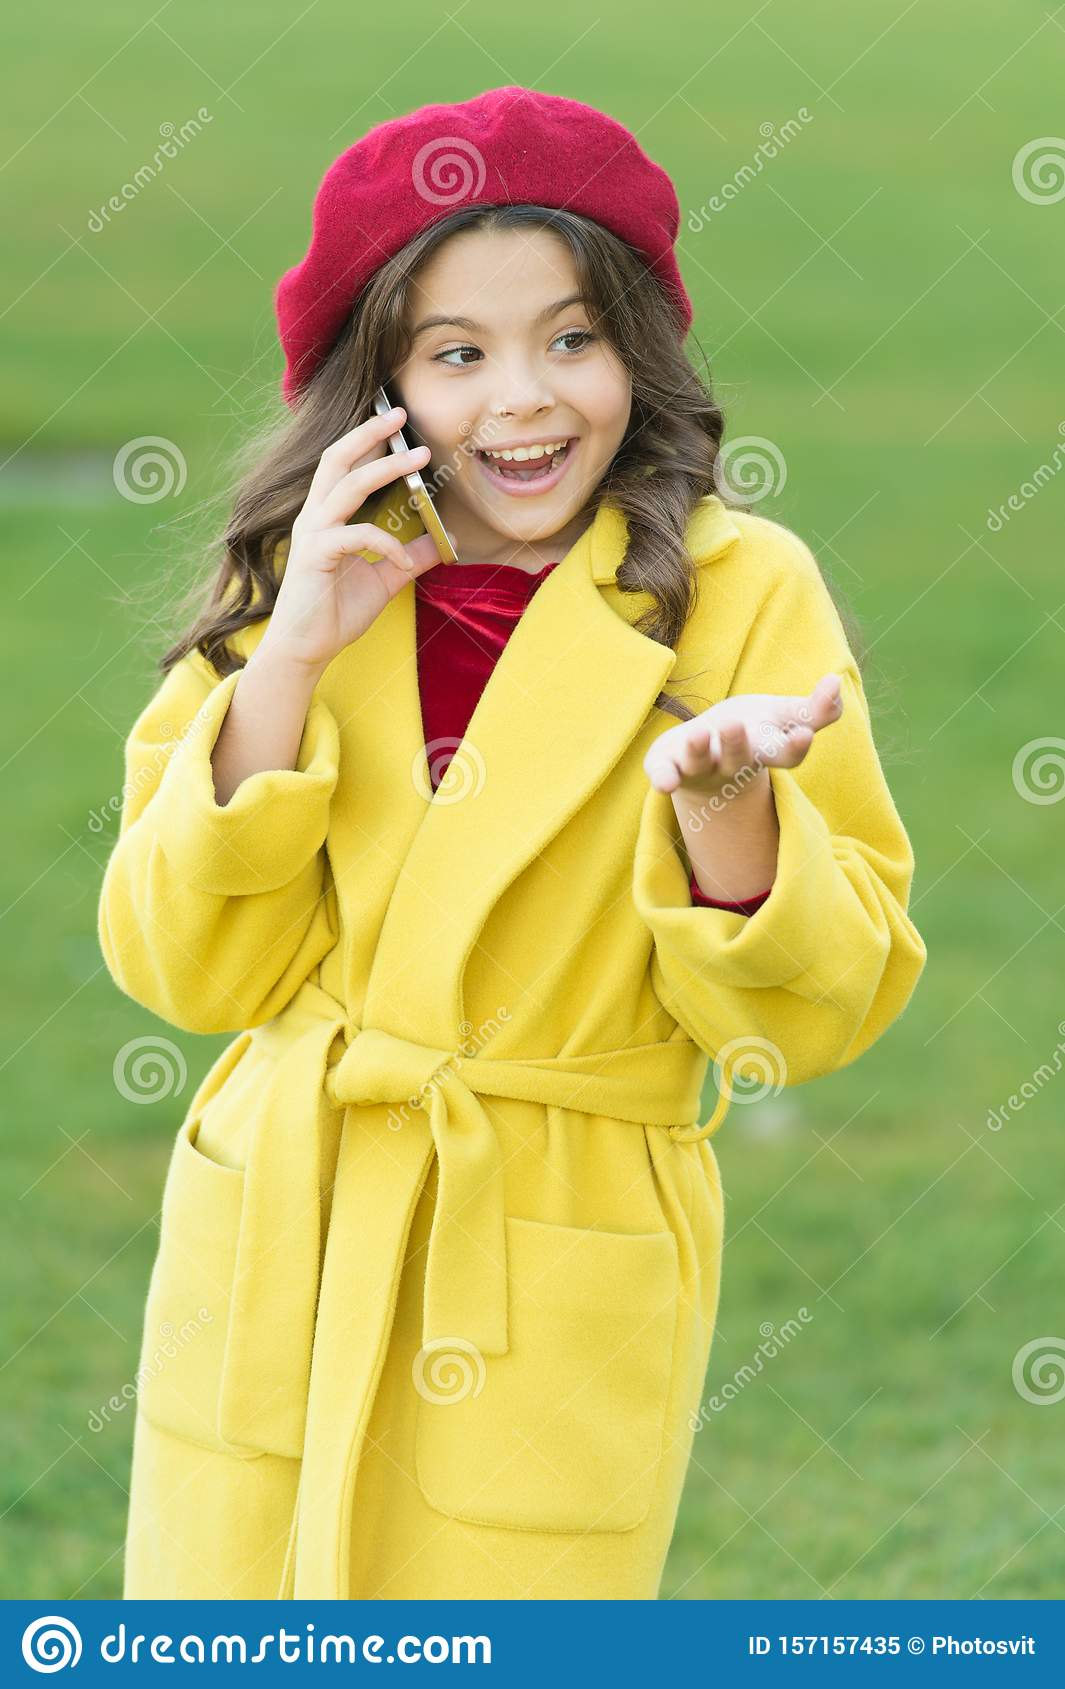 Totally happy. fall season. happy childhood. small child with phone. beauty in autumn coat. cheerful little girl in